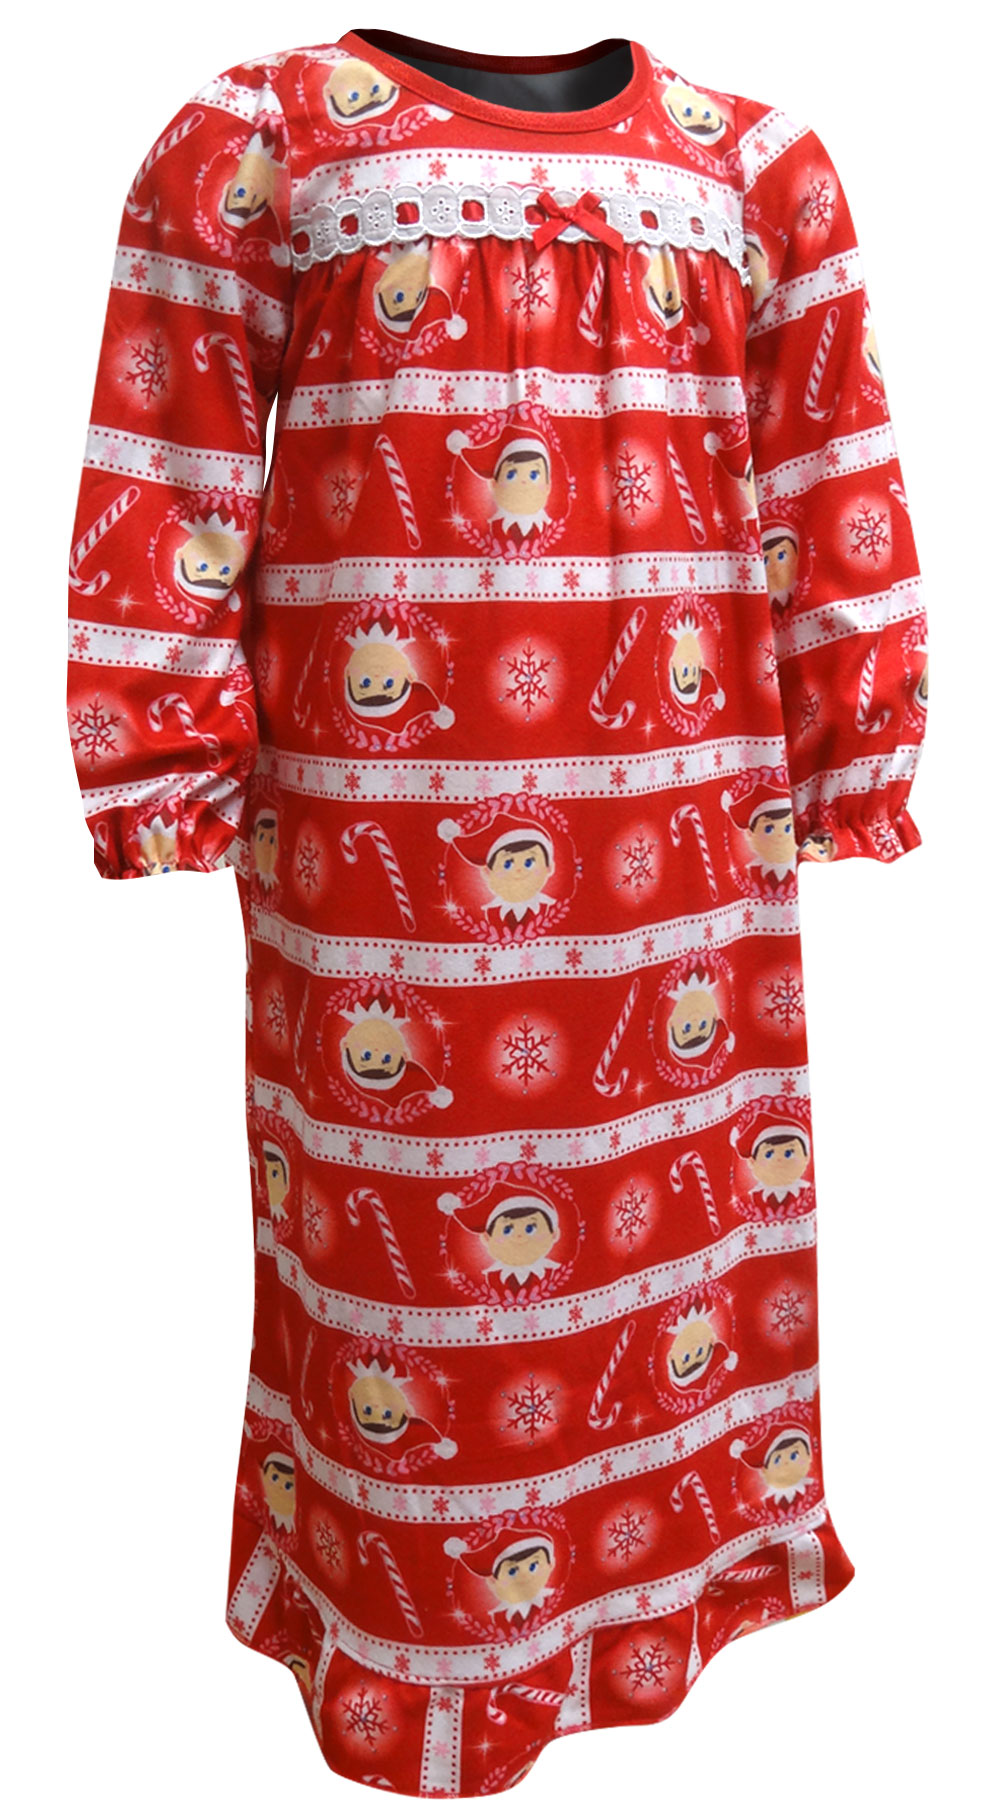 Image of Elf on the Shelf Traditional Flannel Nightgown for girls